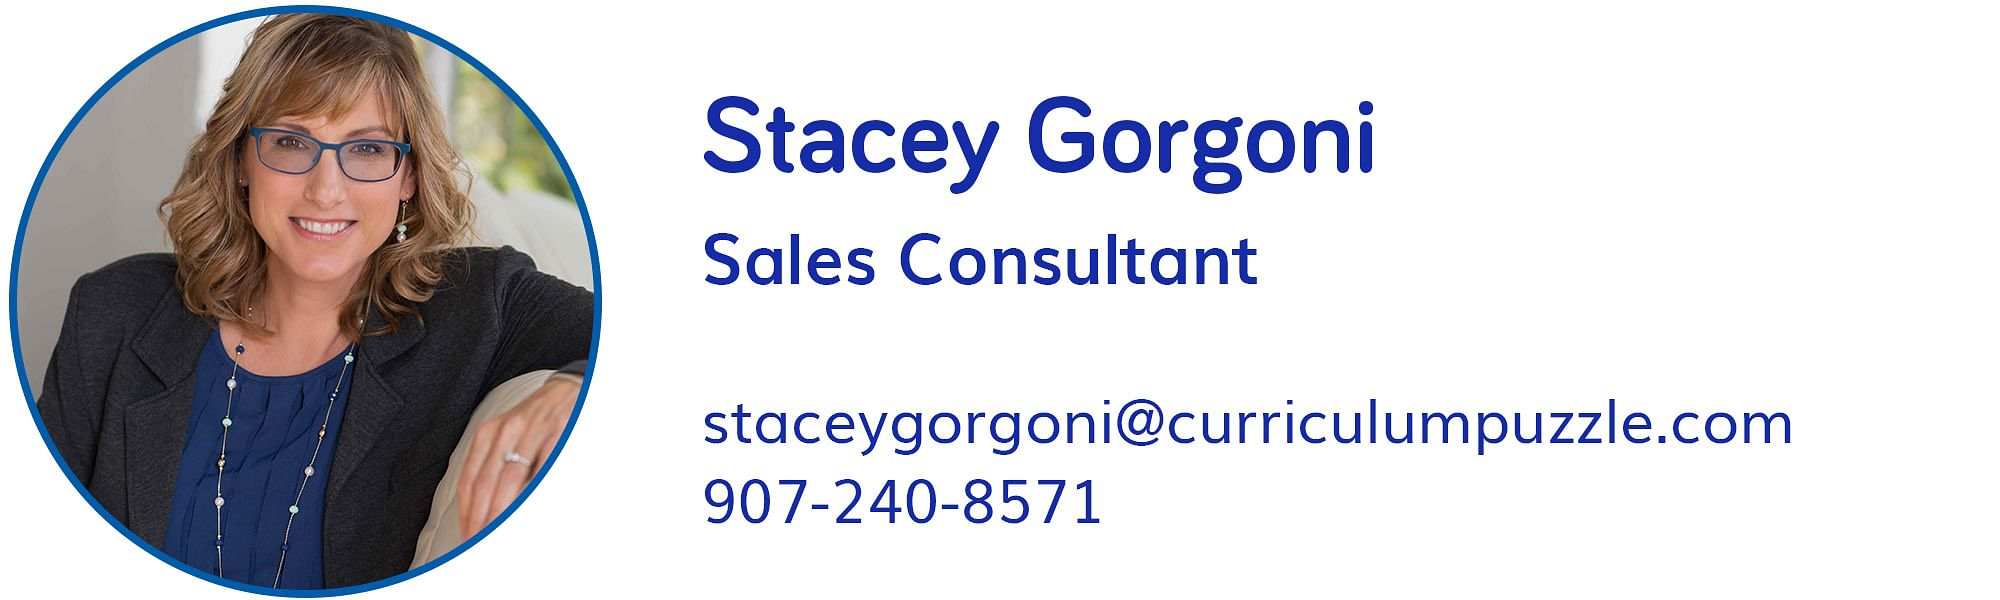 Stacey Gorgoni, staceygorgoni@curriculumpuzzle.com, 907-240-8571